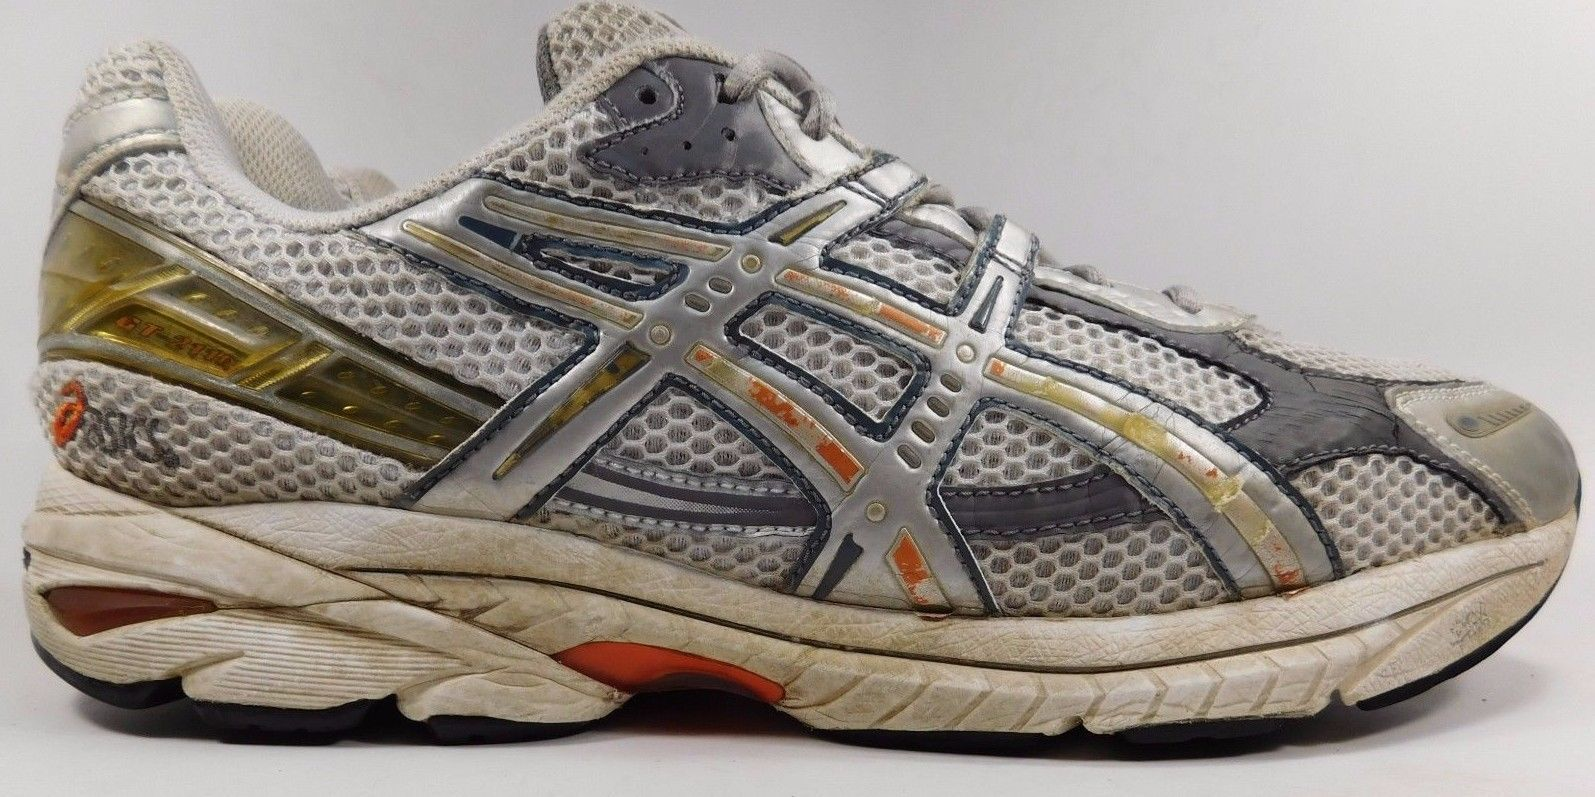 la meilleure attitude fbc87 493ff Asics GT 2110 Men's Running Shoes Size US 14 and 50 similar ...